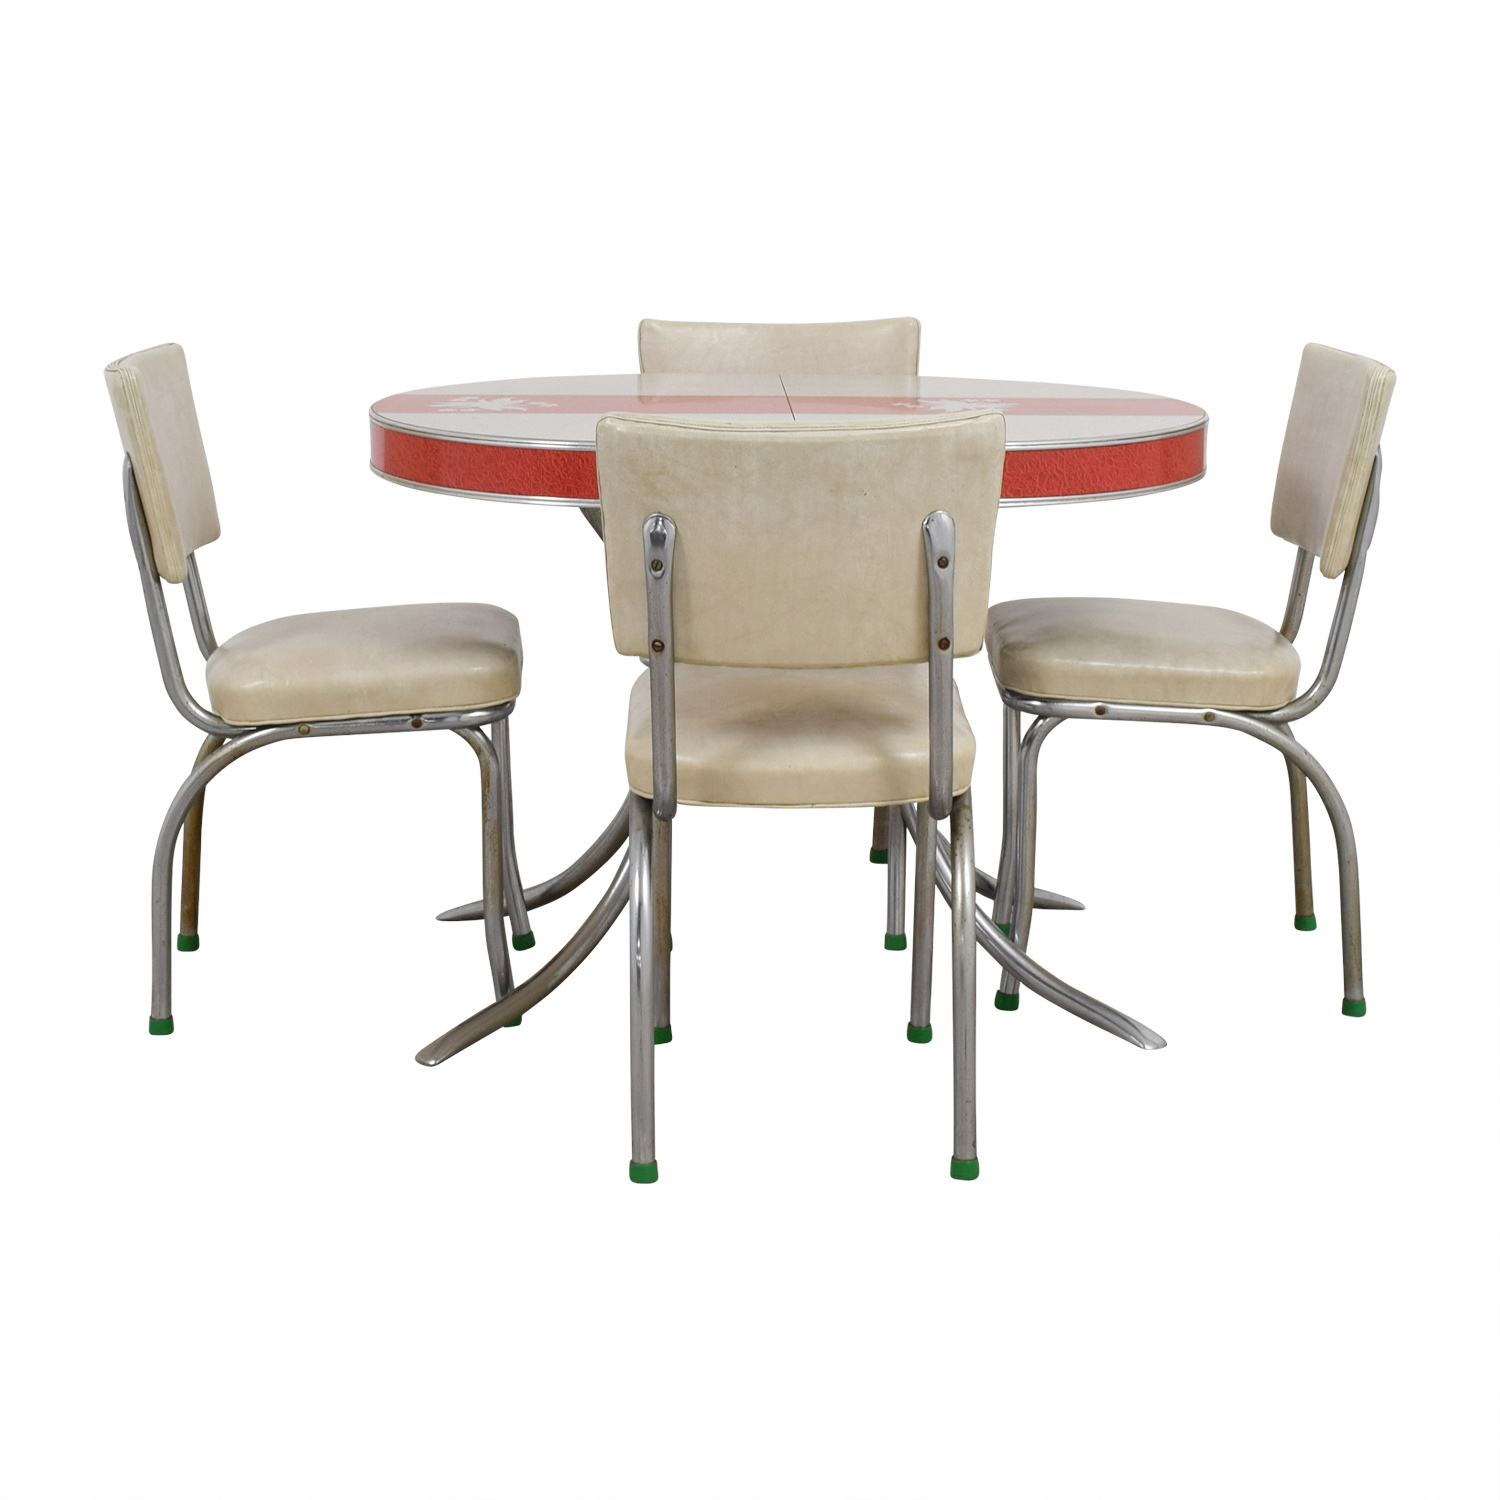 90% OFF - Vintage Extendable Formica Top Aluminum Kitchen Table and Chairs  / Tables